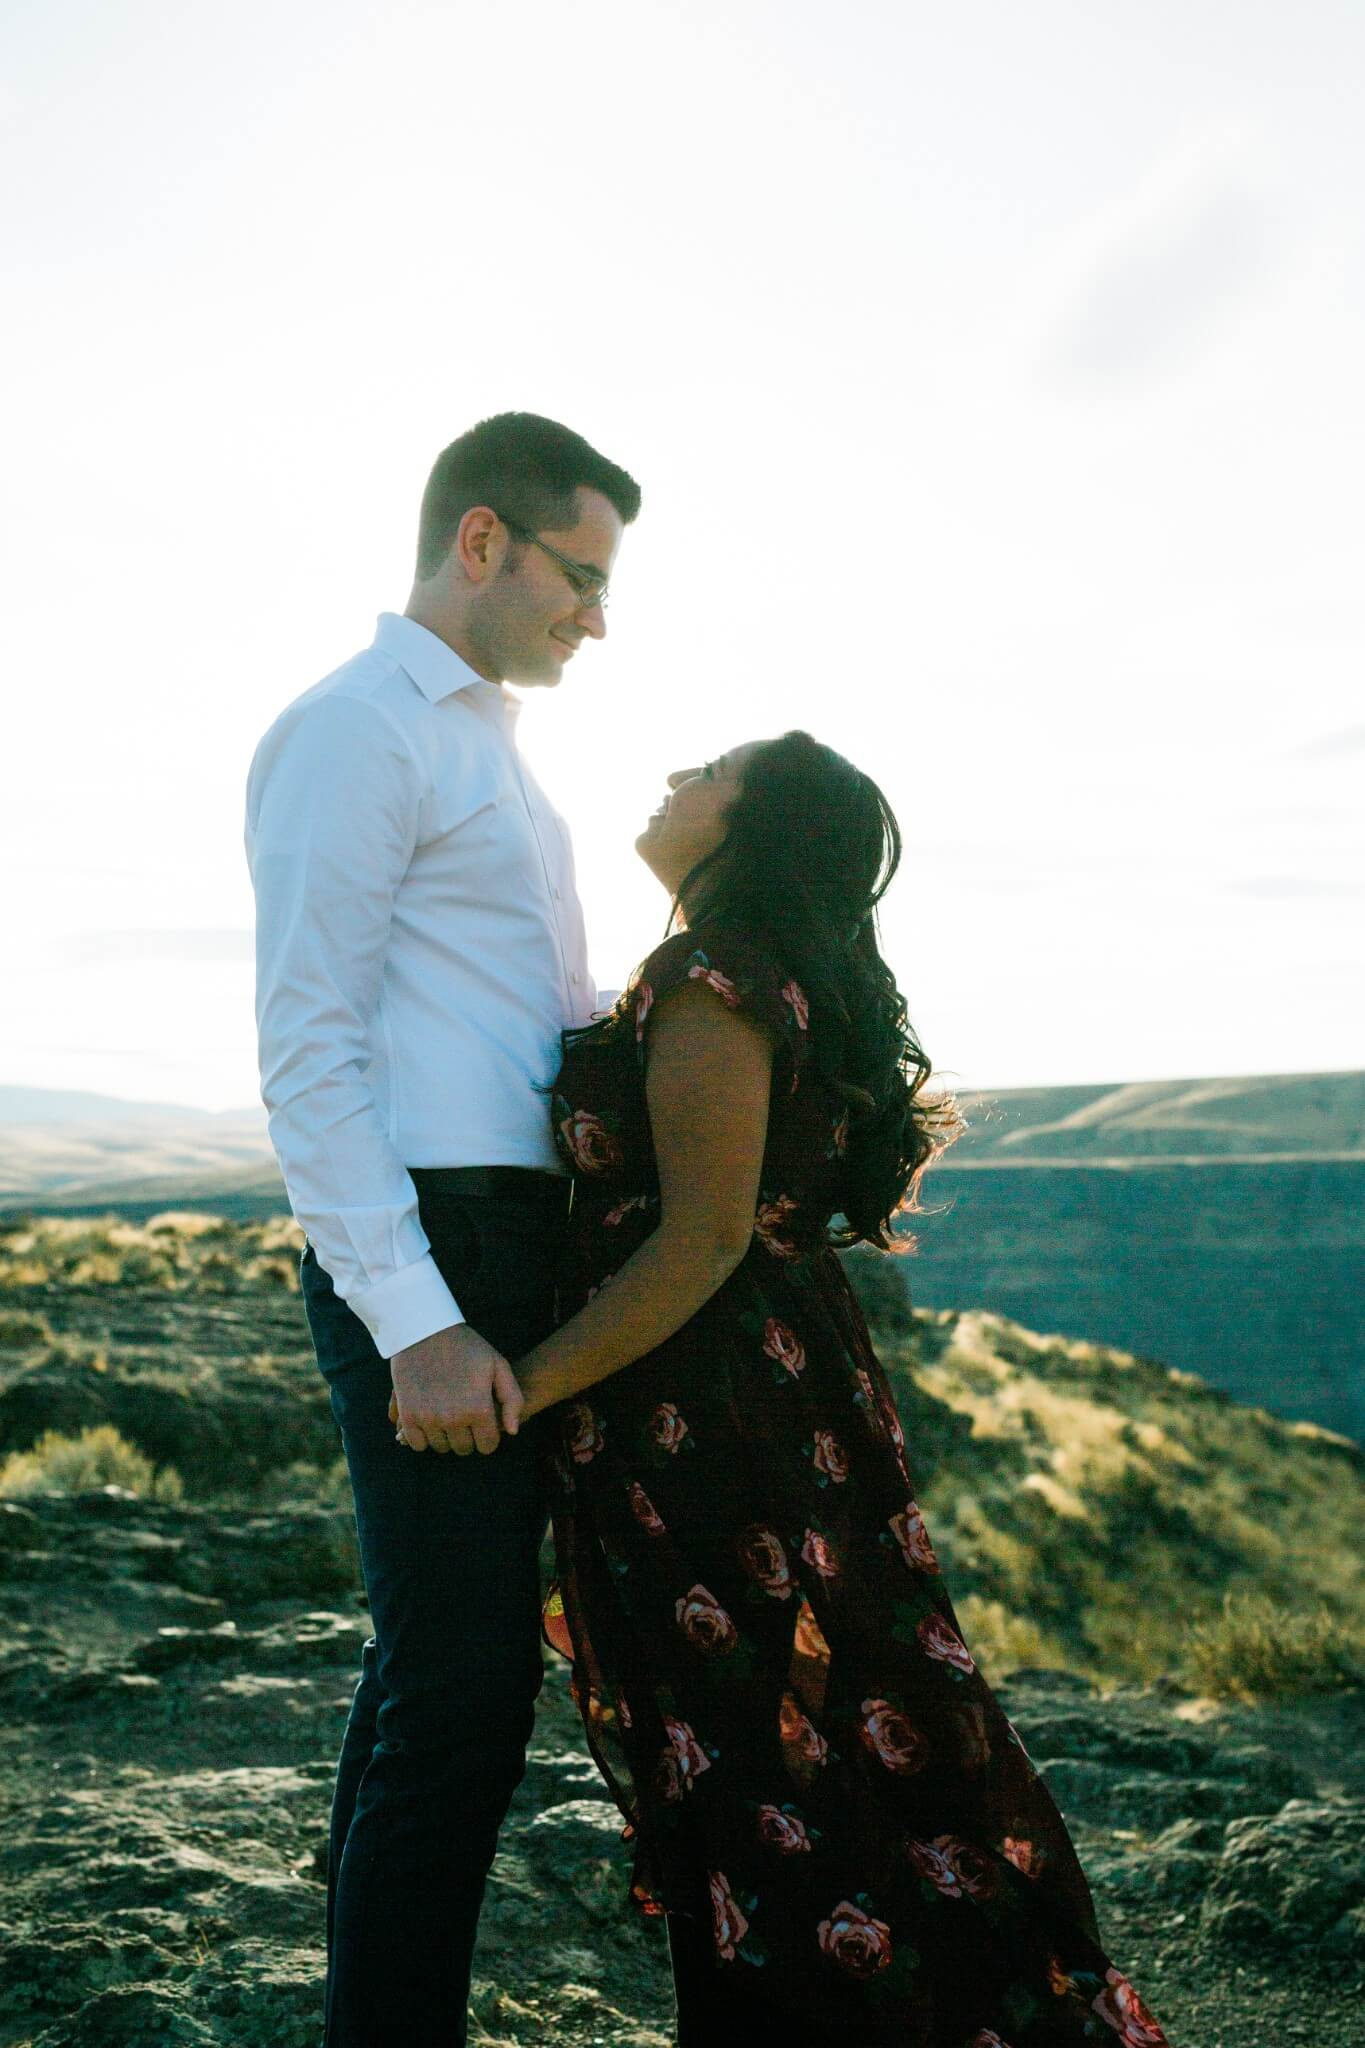 Lesly & Michael Vantage Engagement by Bill Weisgerber Spokane Photographer (15 of 71).jpg